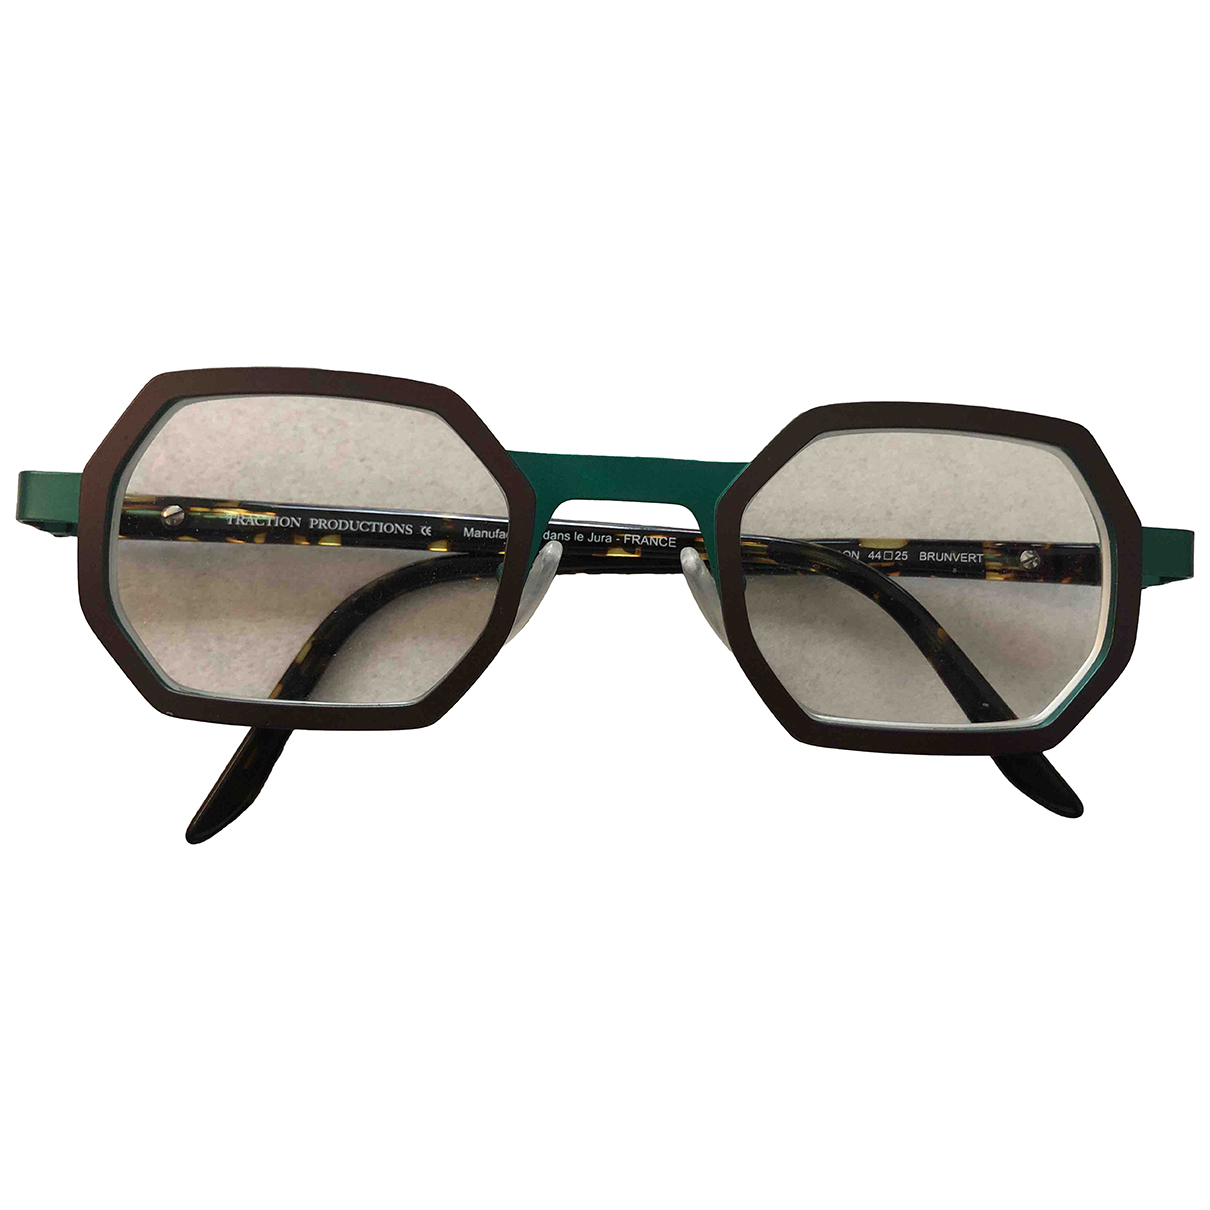 Traction Productions N Green Metal Sunglasses for Men N